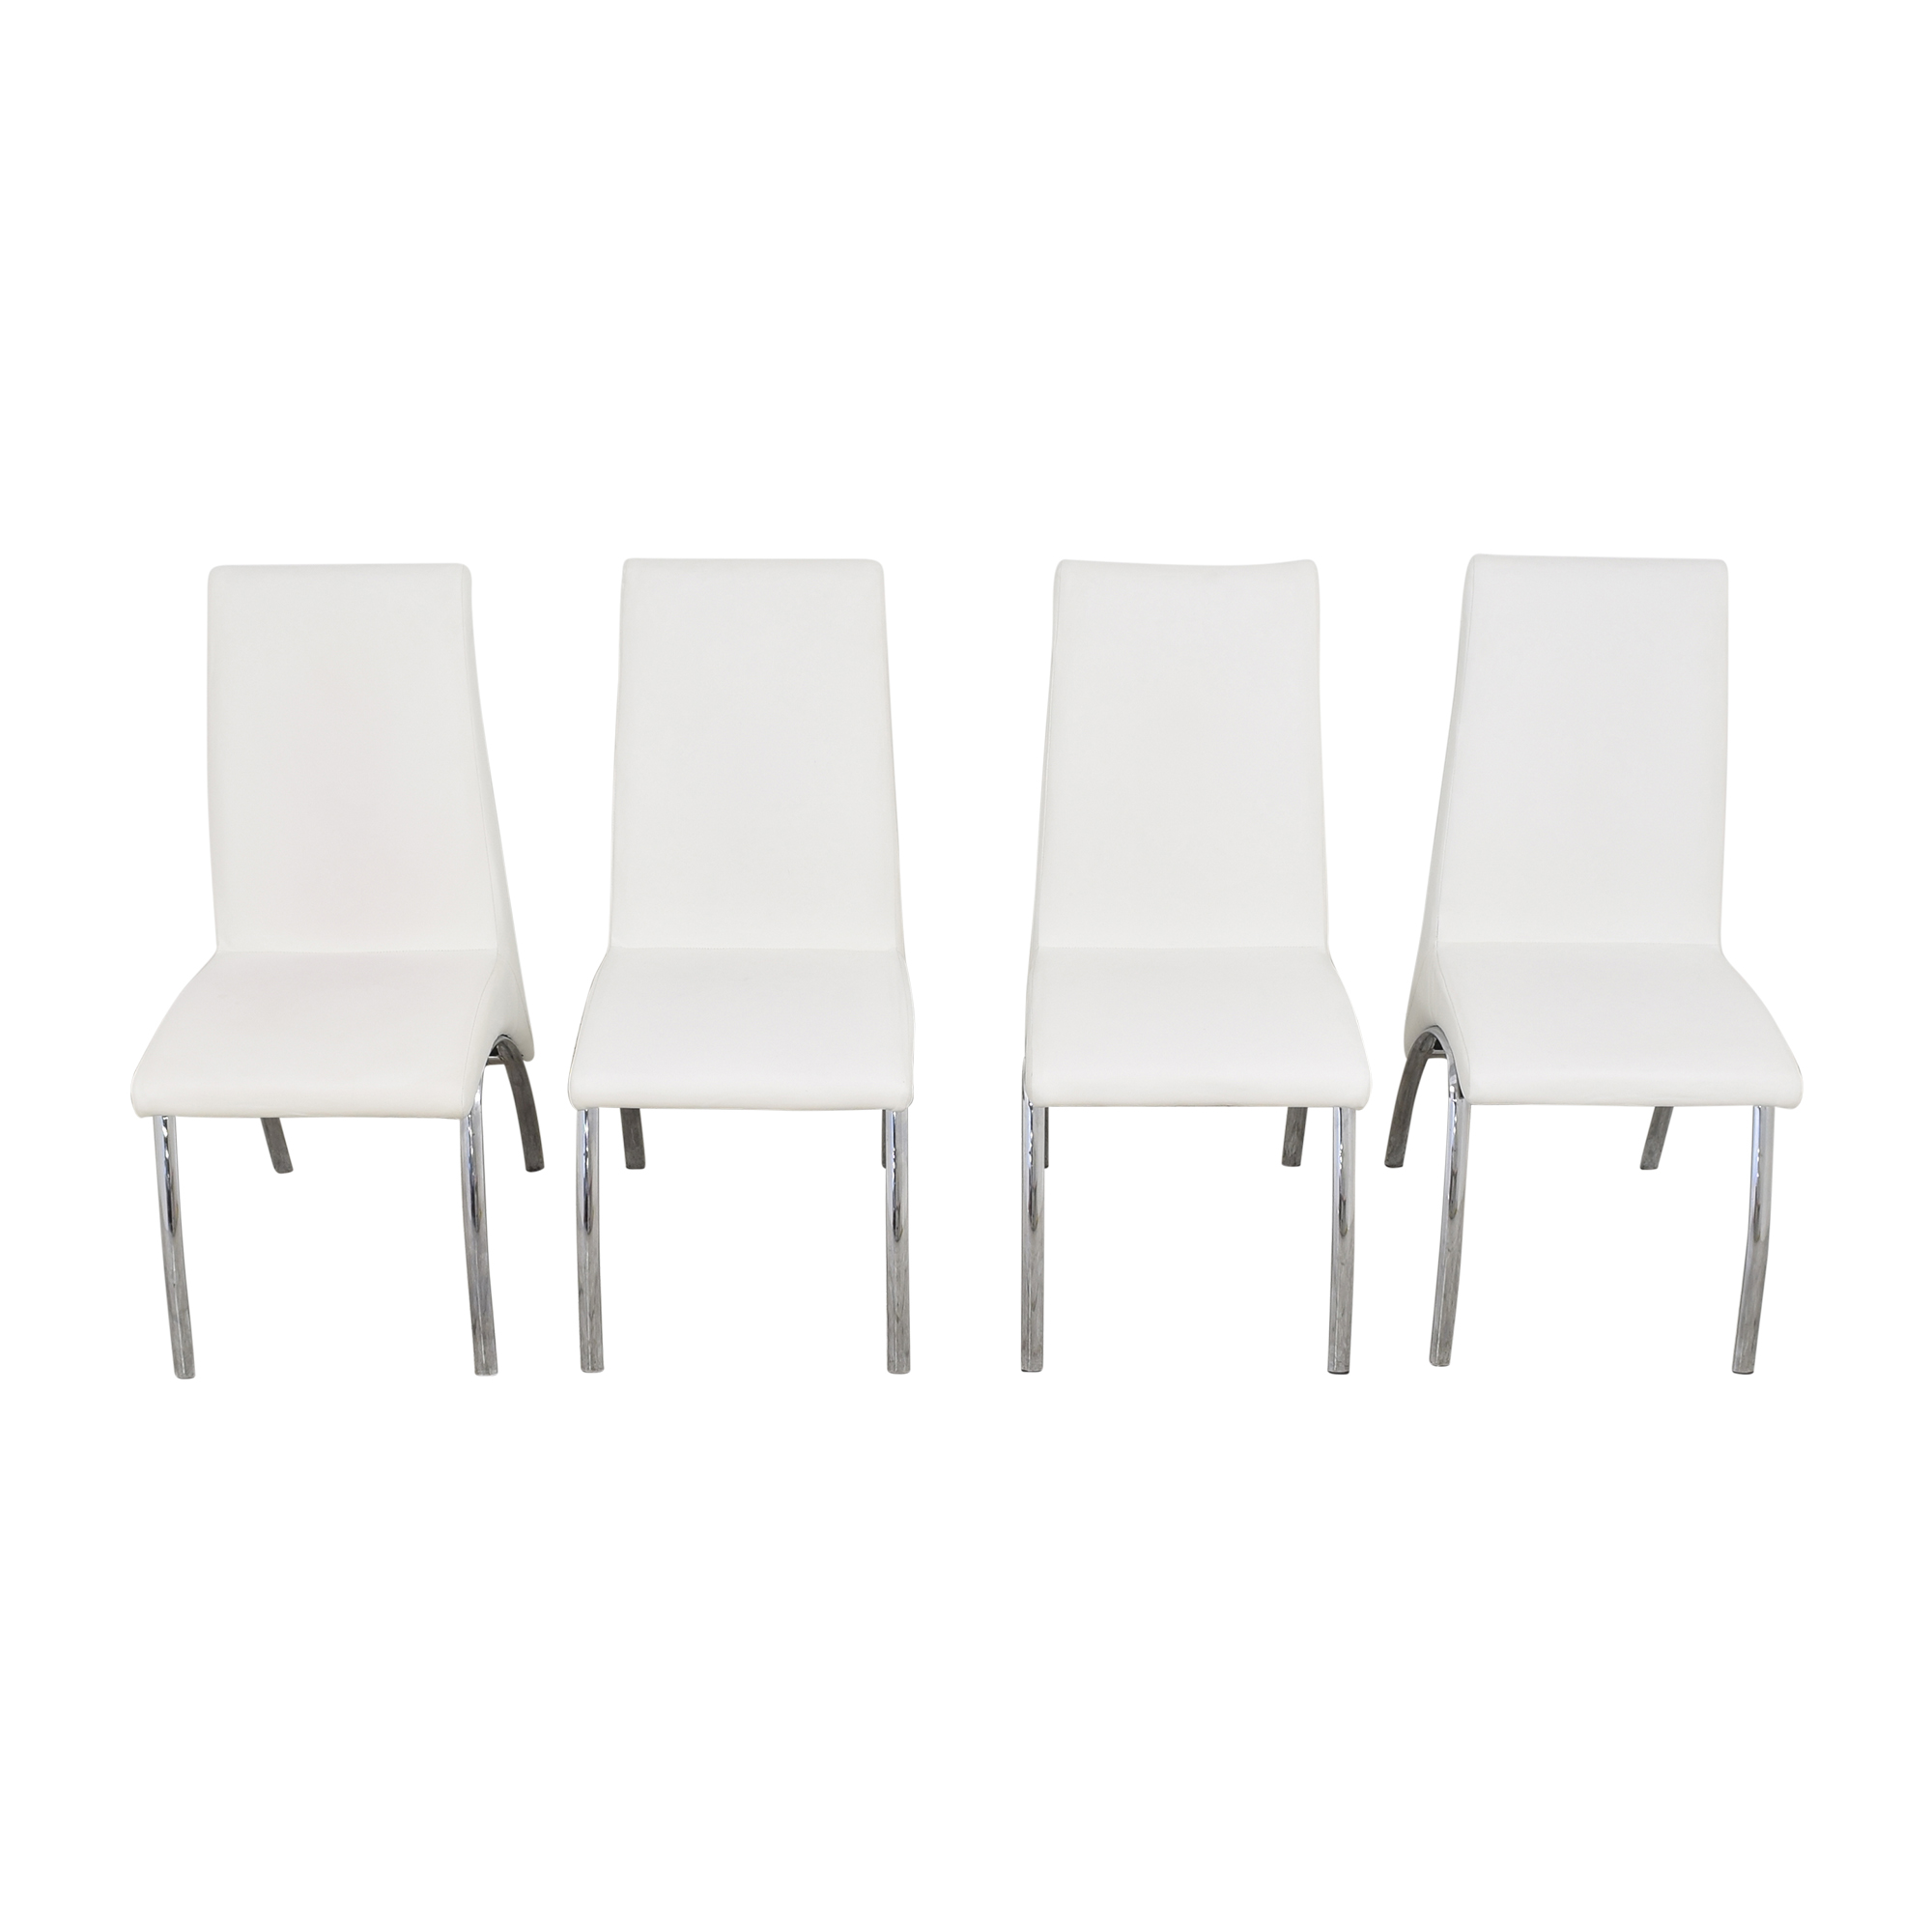 Furniture World Furniture World Contemporary Dining Chairs ma